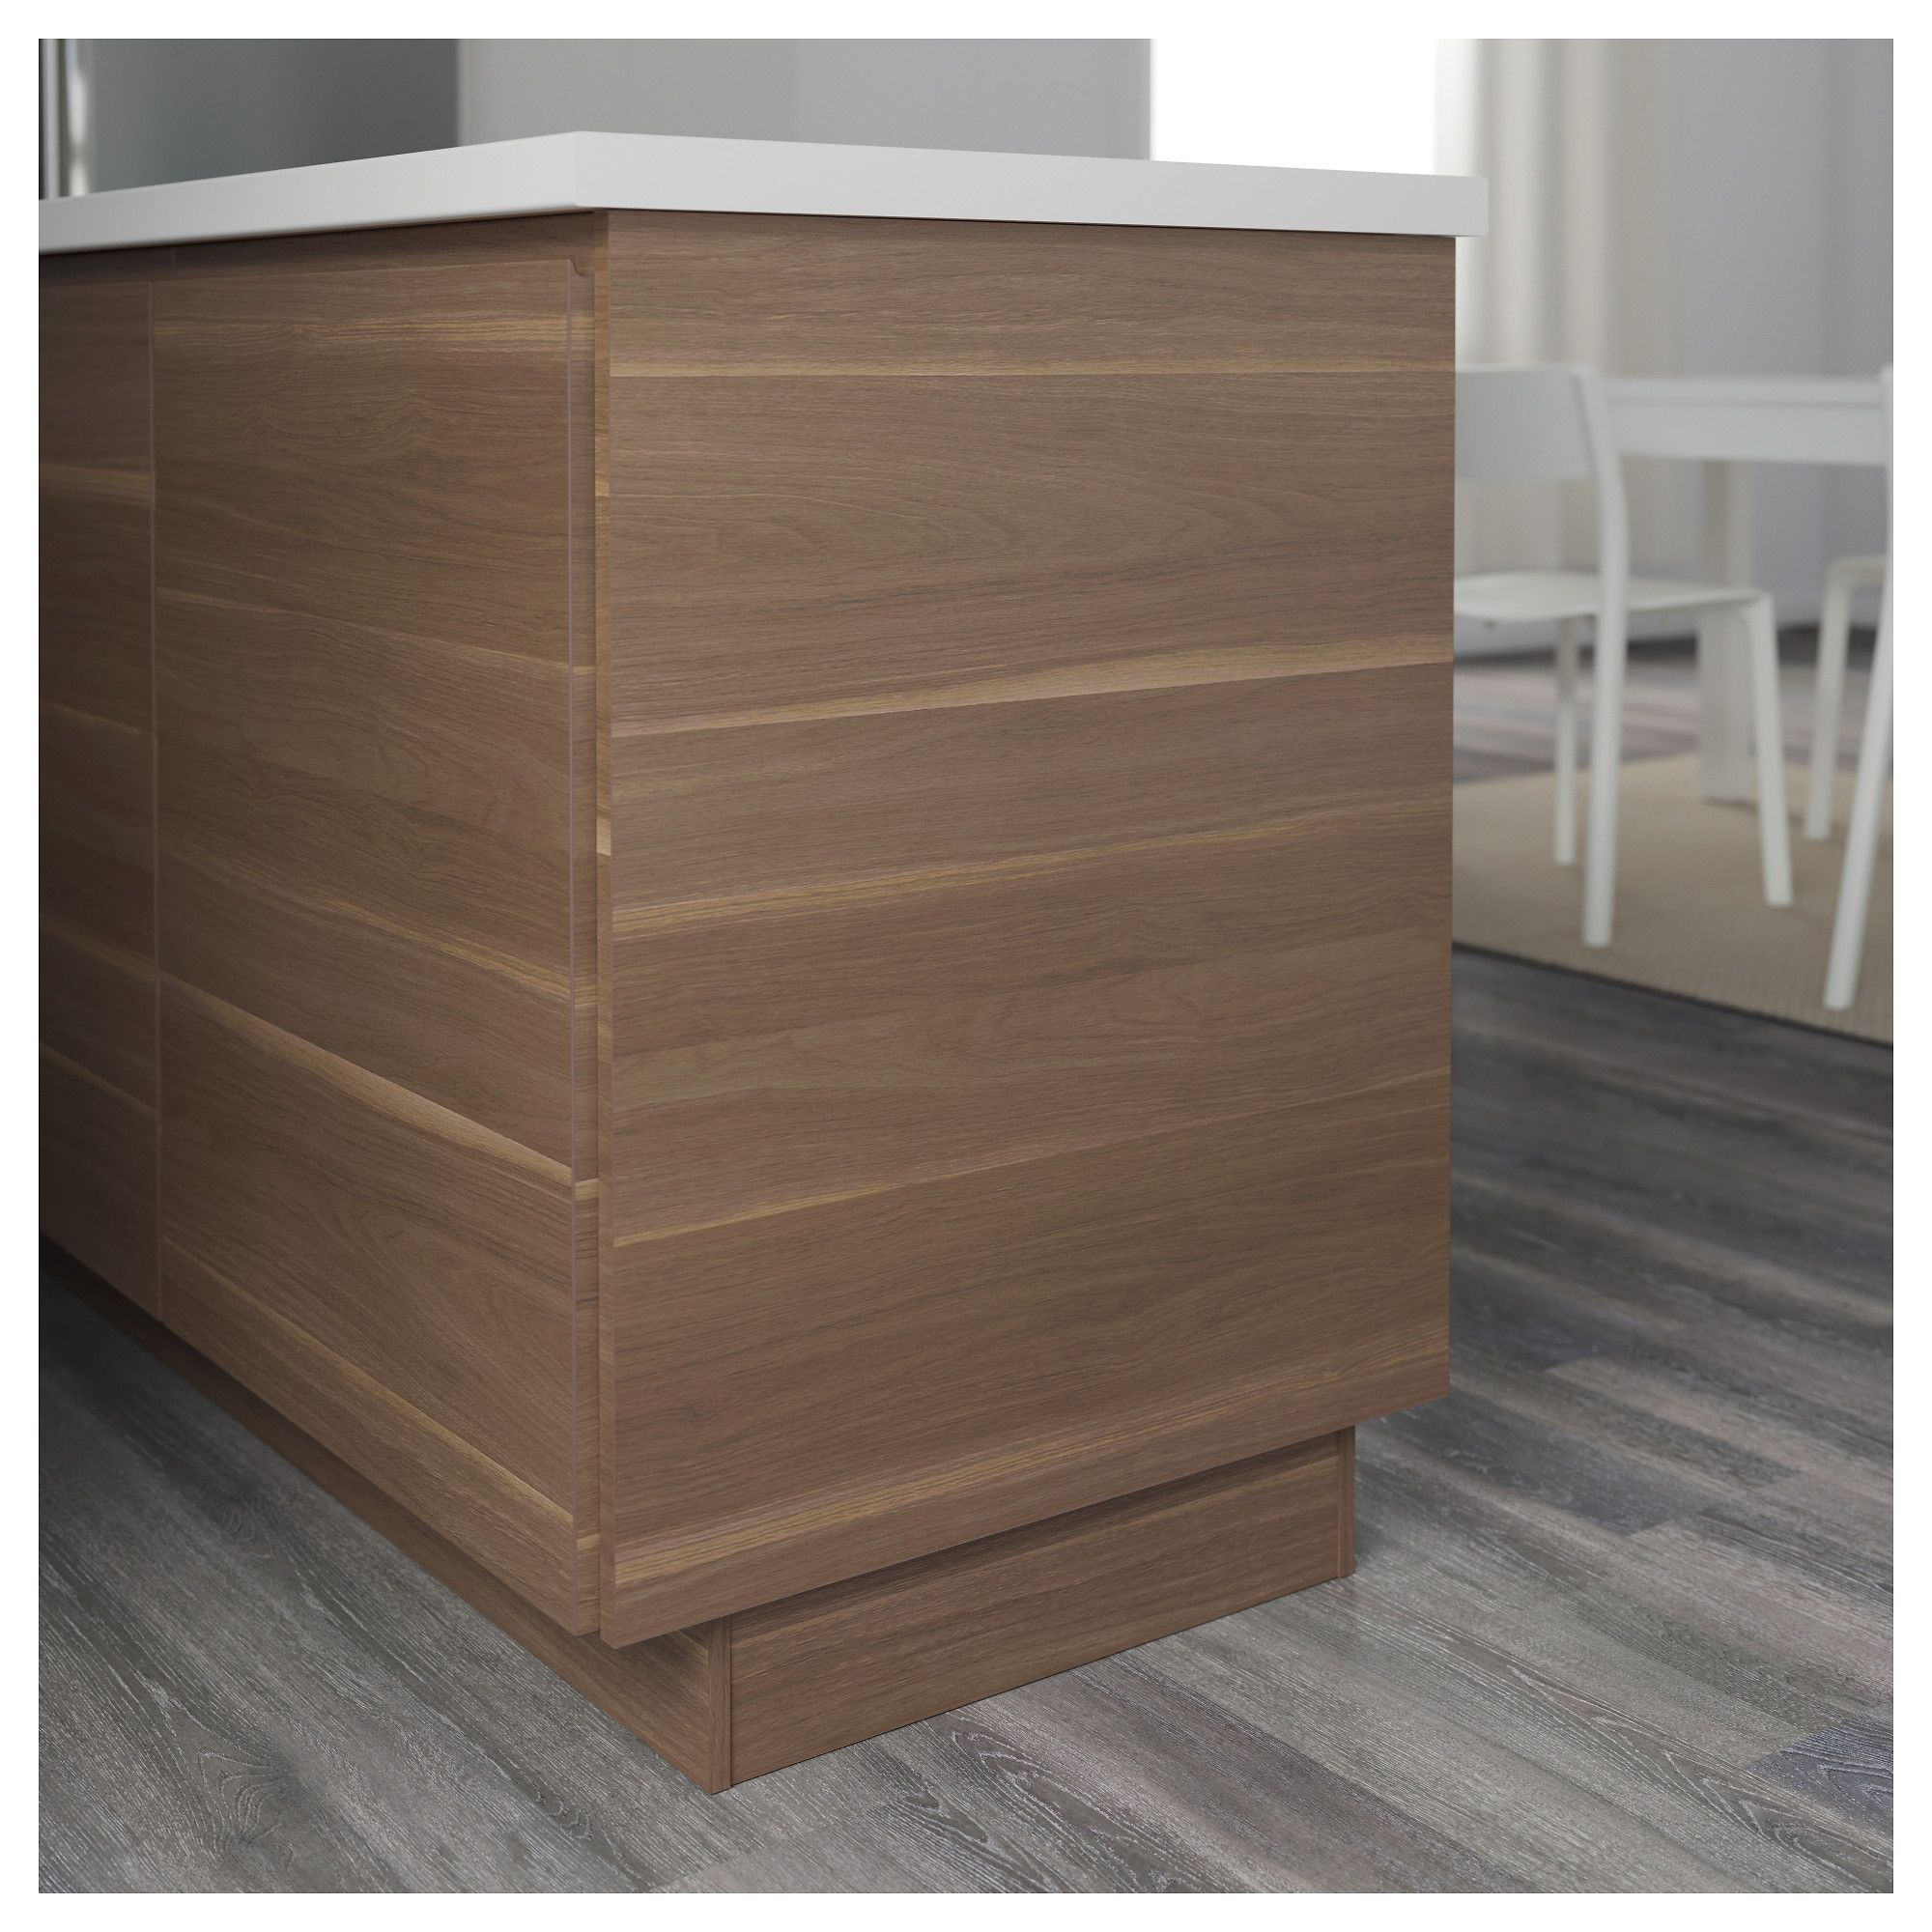 Ikea Küchenfronten Voxtorp Voxtorp Cover Panel Walnut Effect Products Kitchen